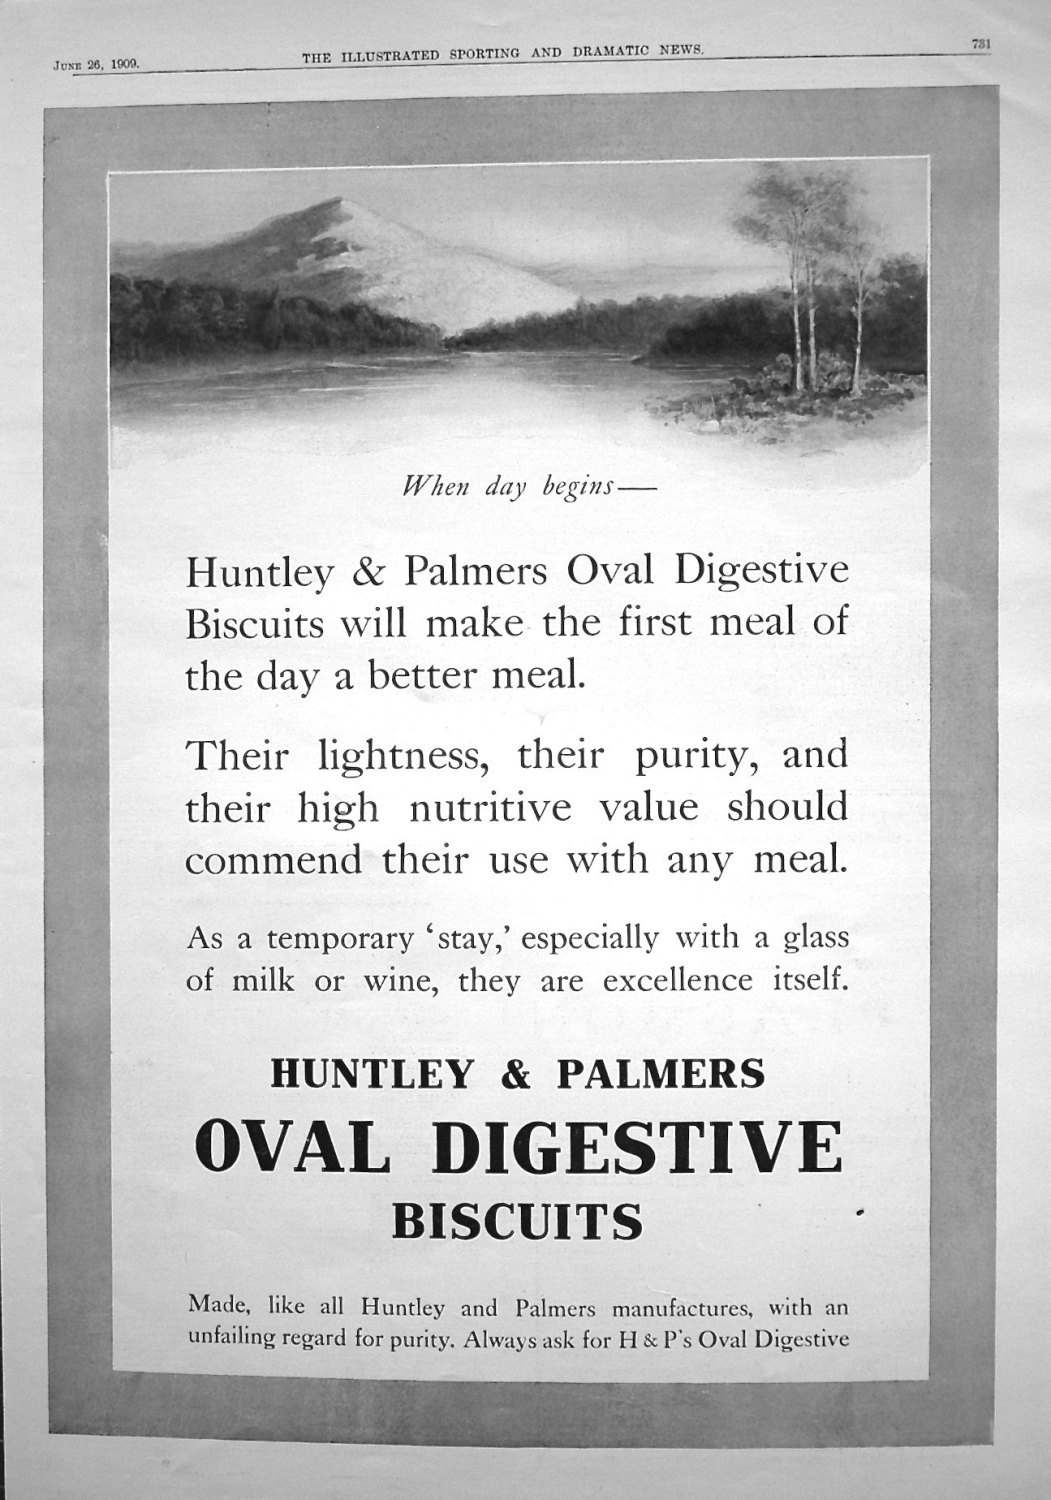 Huntley & Palmers. 1909